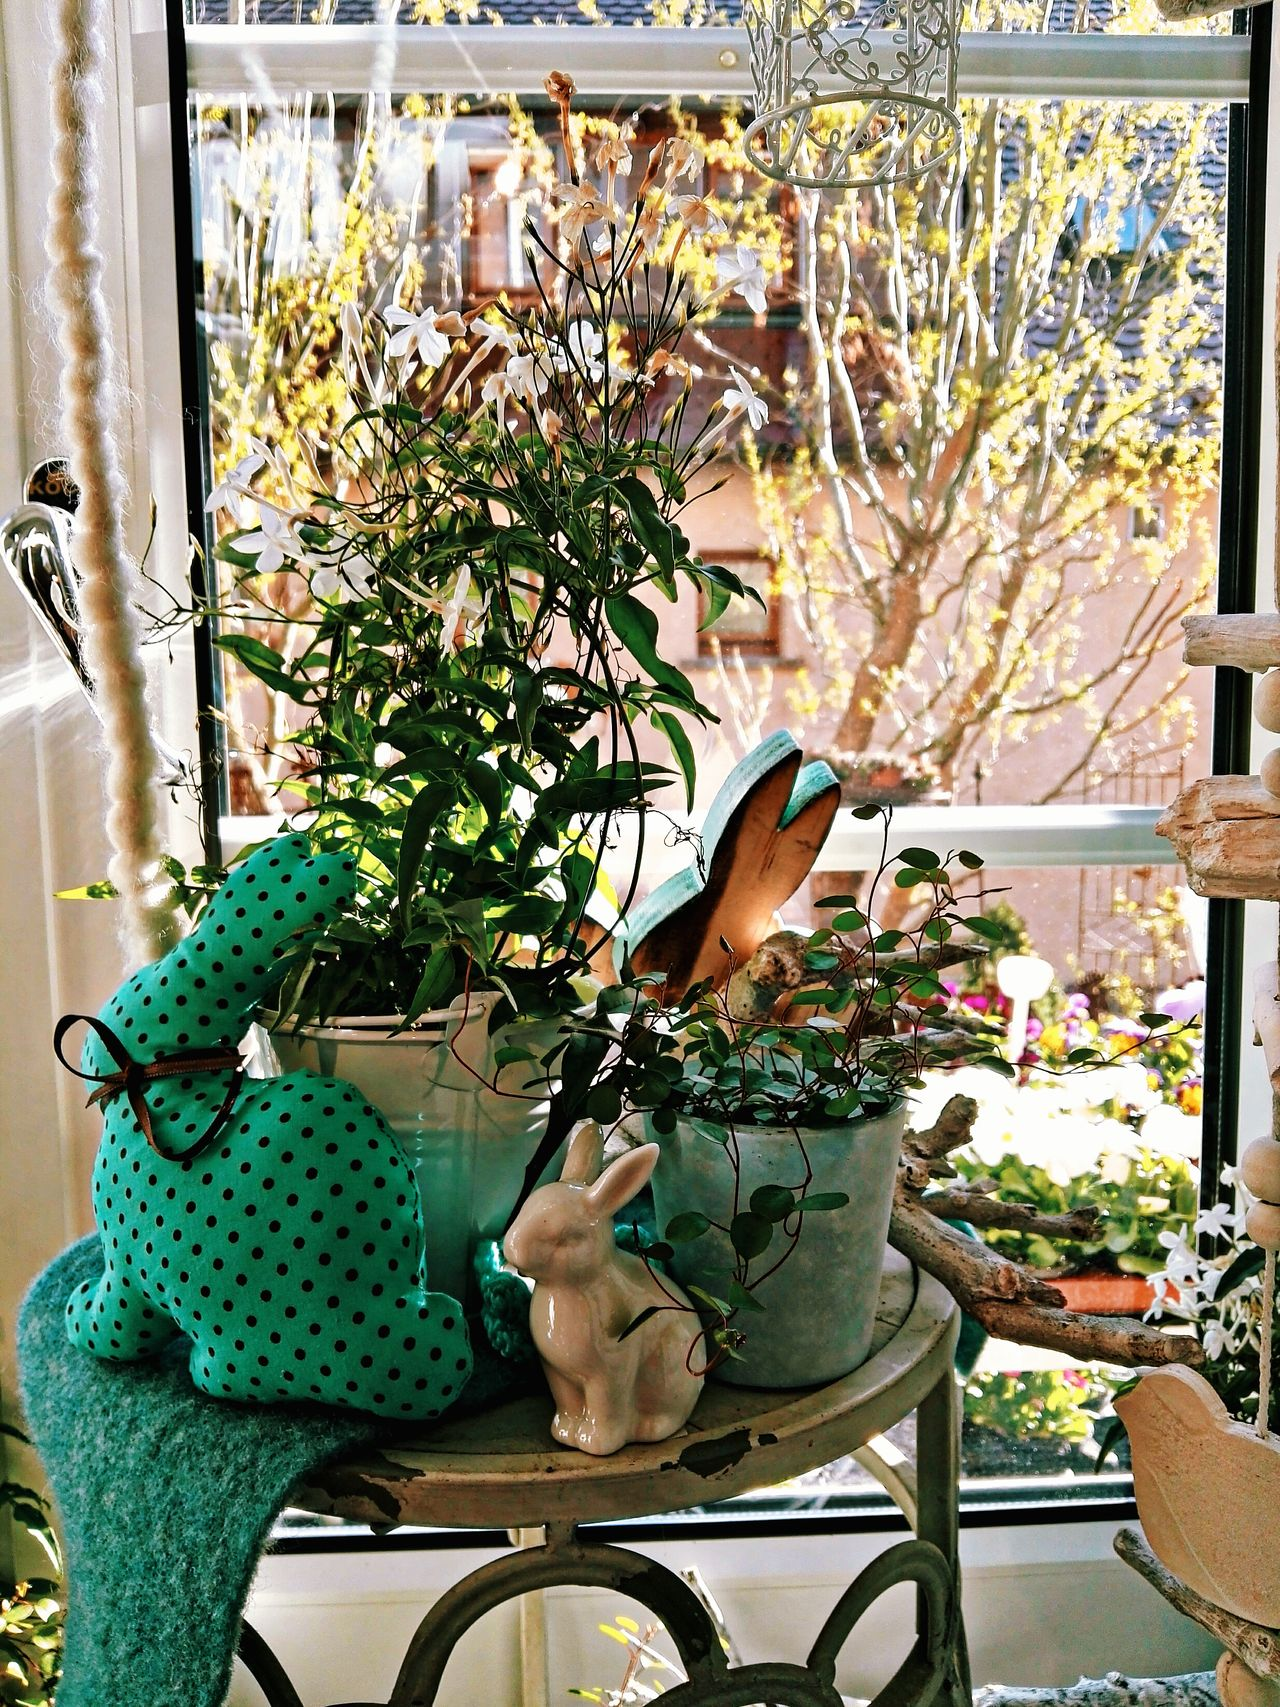 Easter decoration at home Potted Plant Growth Plant Indoors  Gardening Nature Watering Can Beauty In Nature Close-up Greenhouse Decoration Easter Decoration Easter Atmosphere Easter Home Easter Window Deco Easter Ready Easter Sunday Easter Bunny